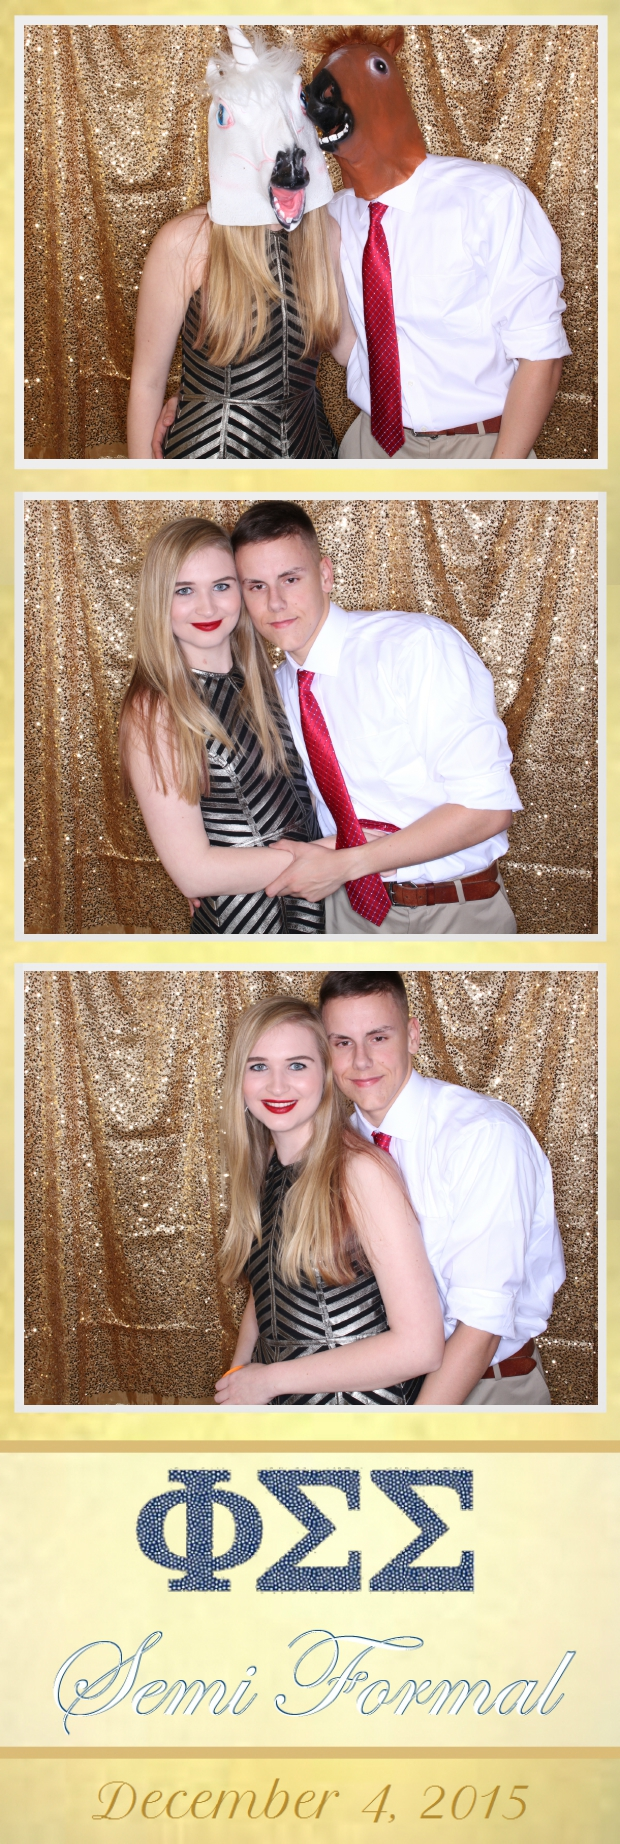 Guest House Events Photo Booth Phi Sigma Sigma Semi Formal (9).jpg